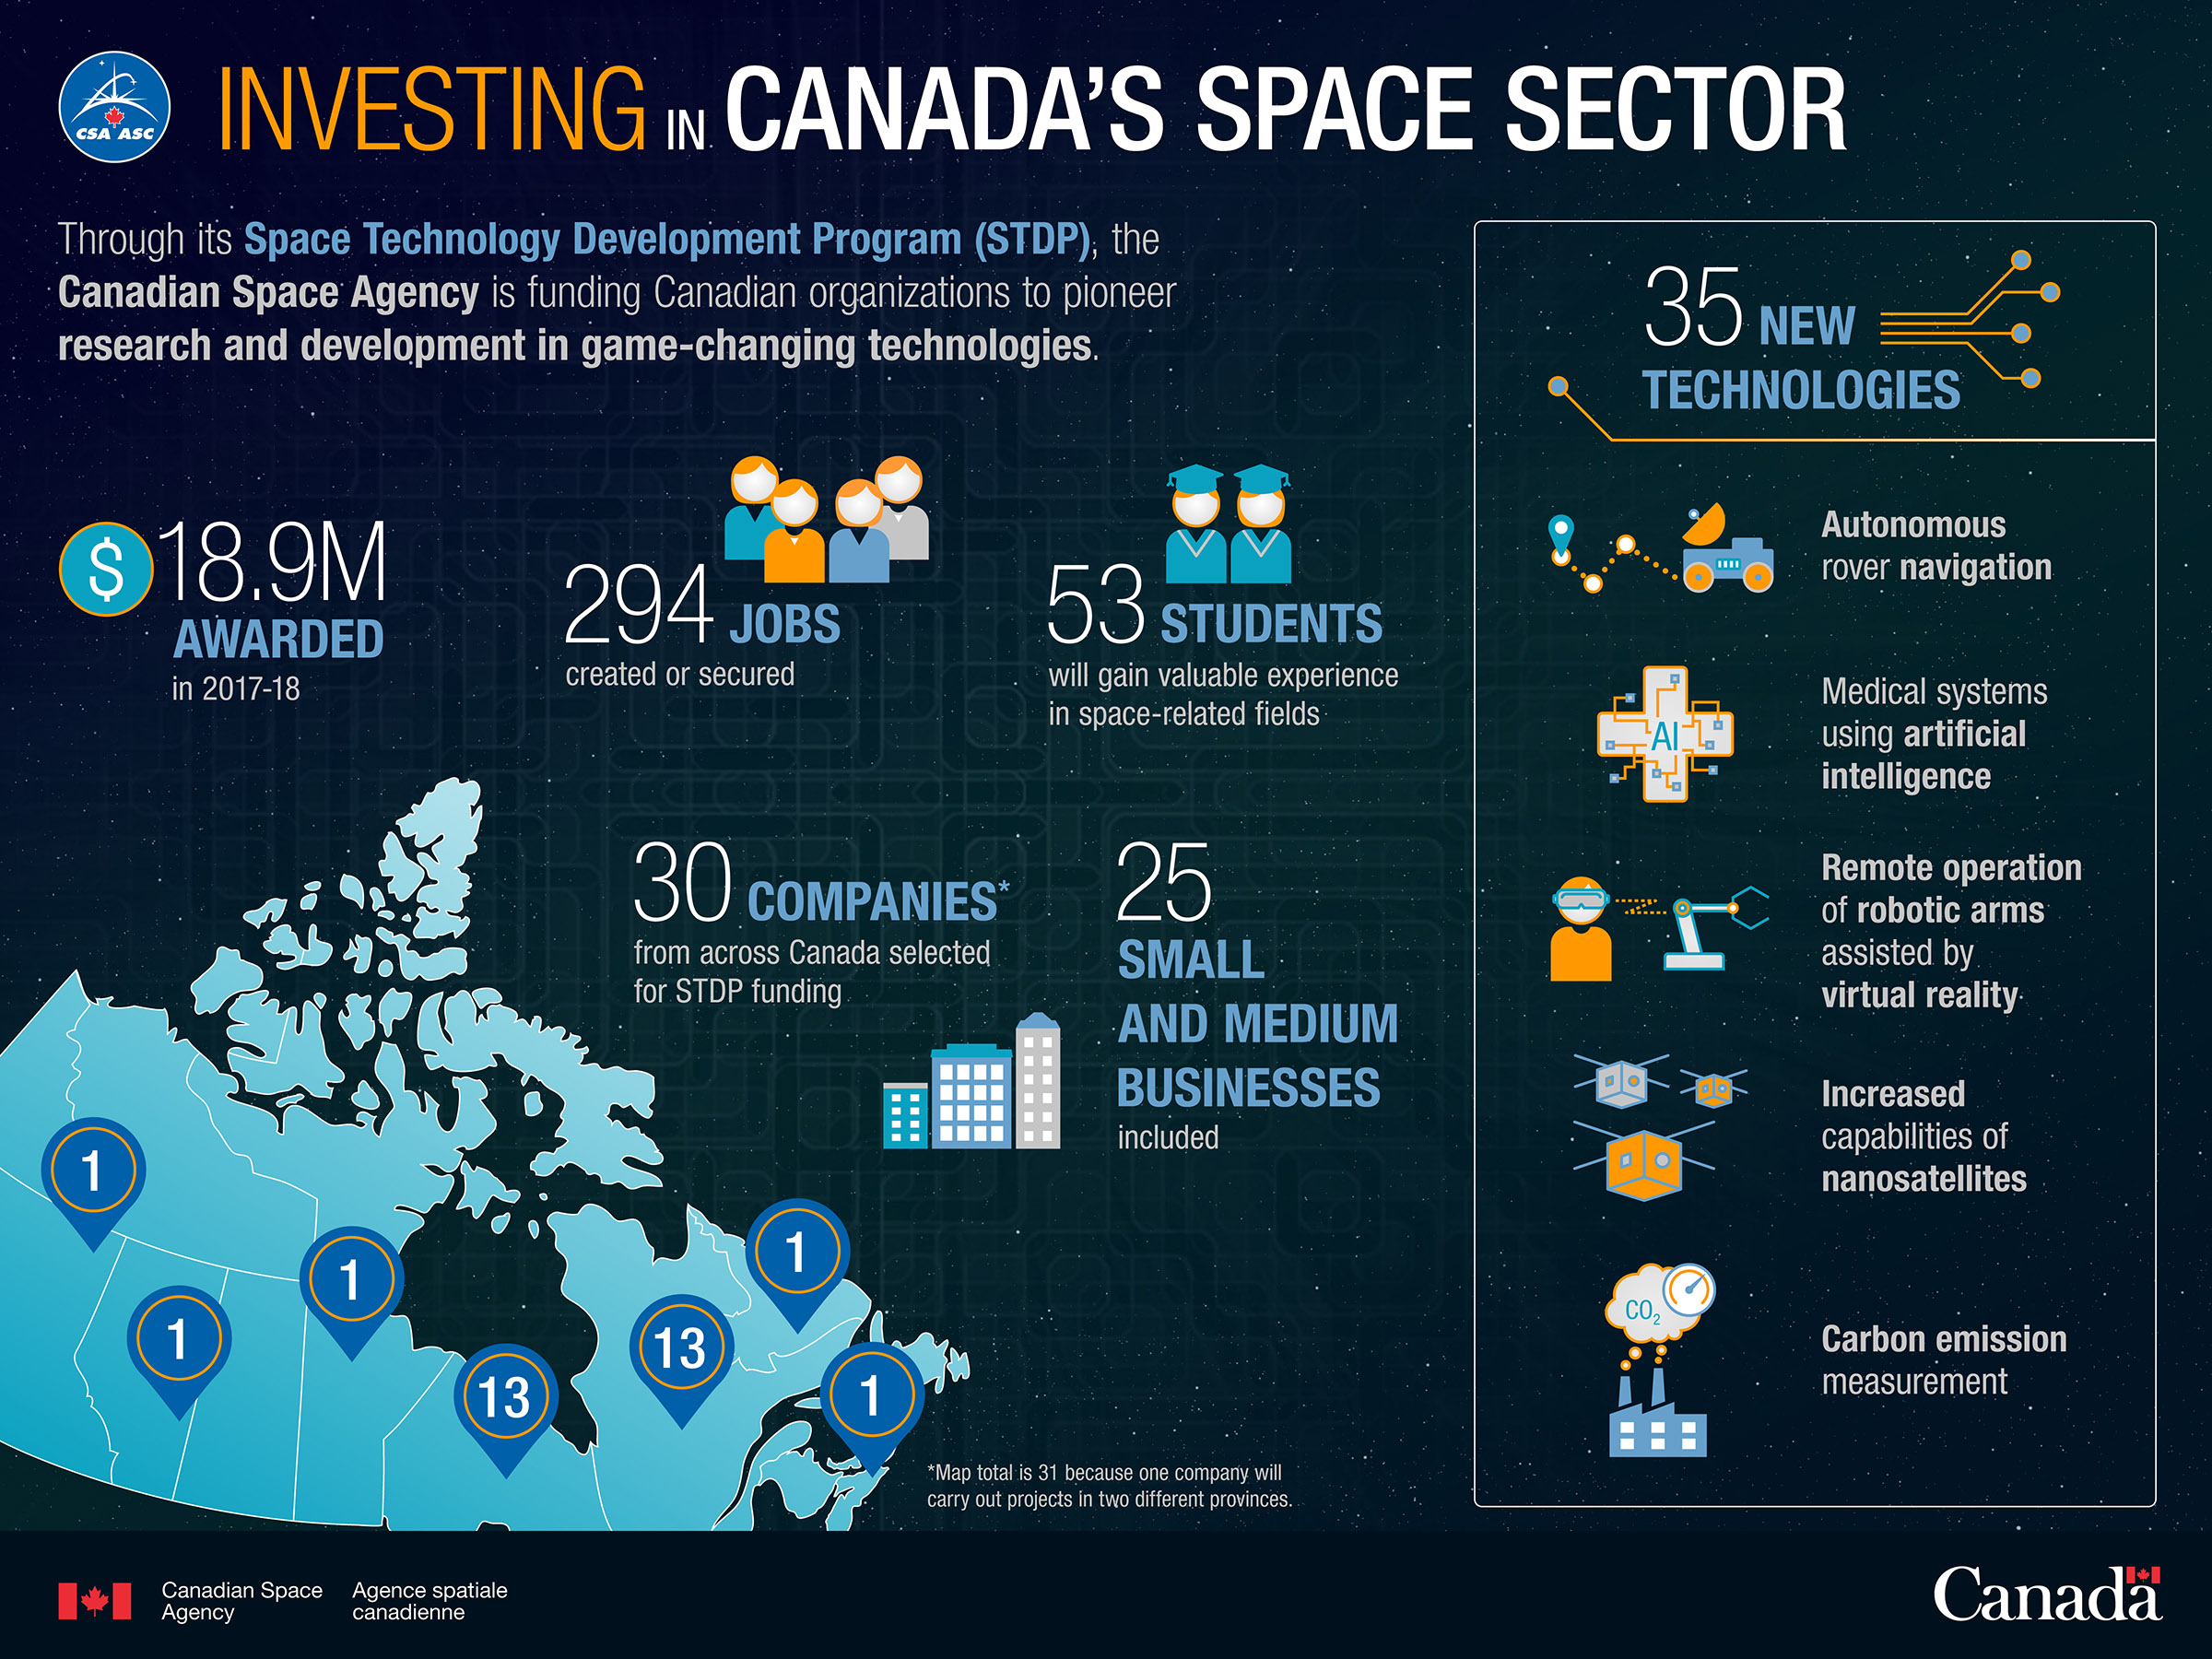 Infographic highlighting the benefits of contribution agreements awarded through the Canadian Space Agency's Space Technology Development Program